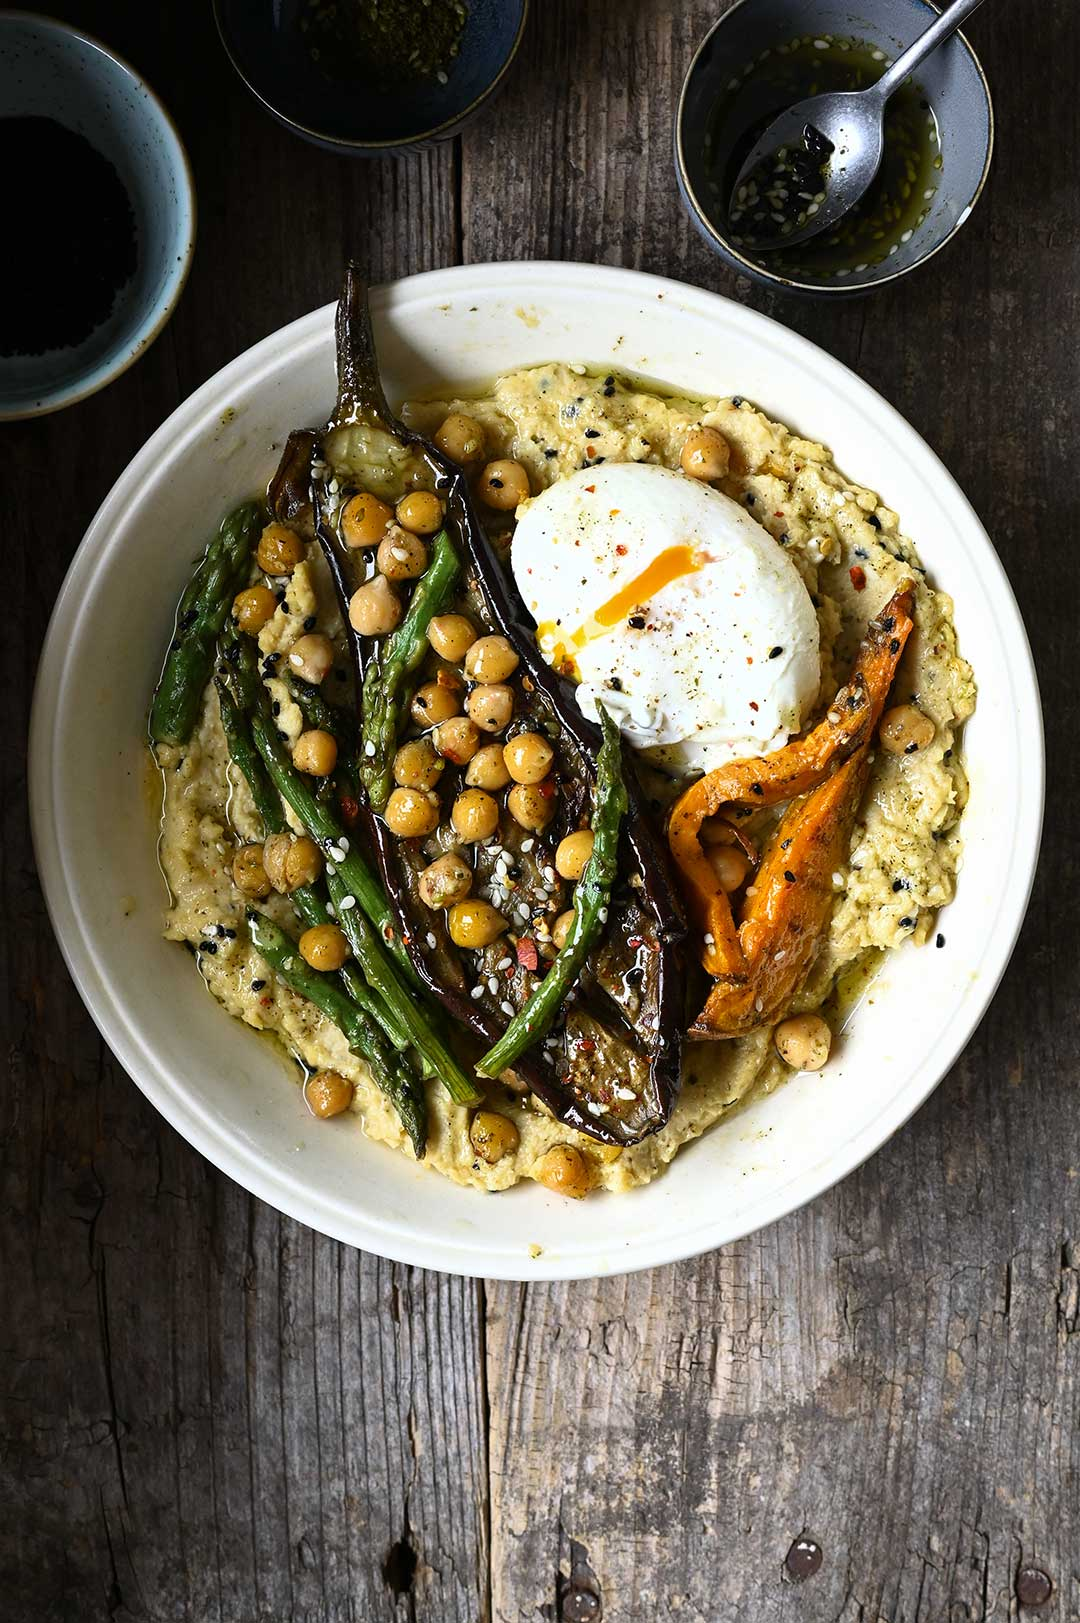 serving dumplings | Hummus bowl with roasted vegetables & za'atar oil